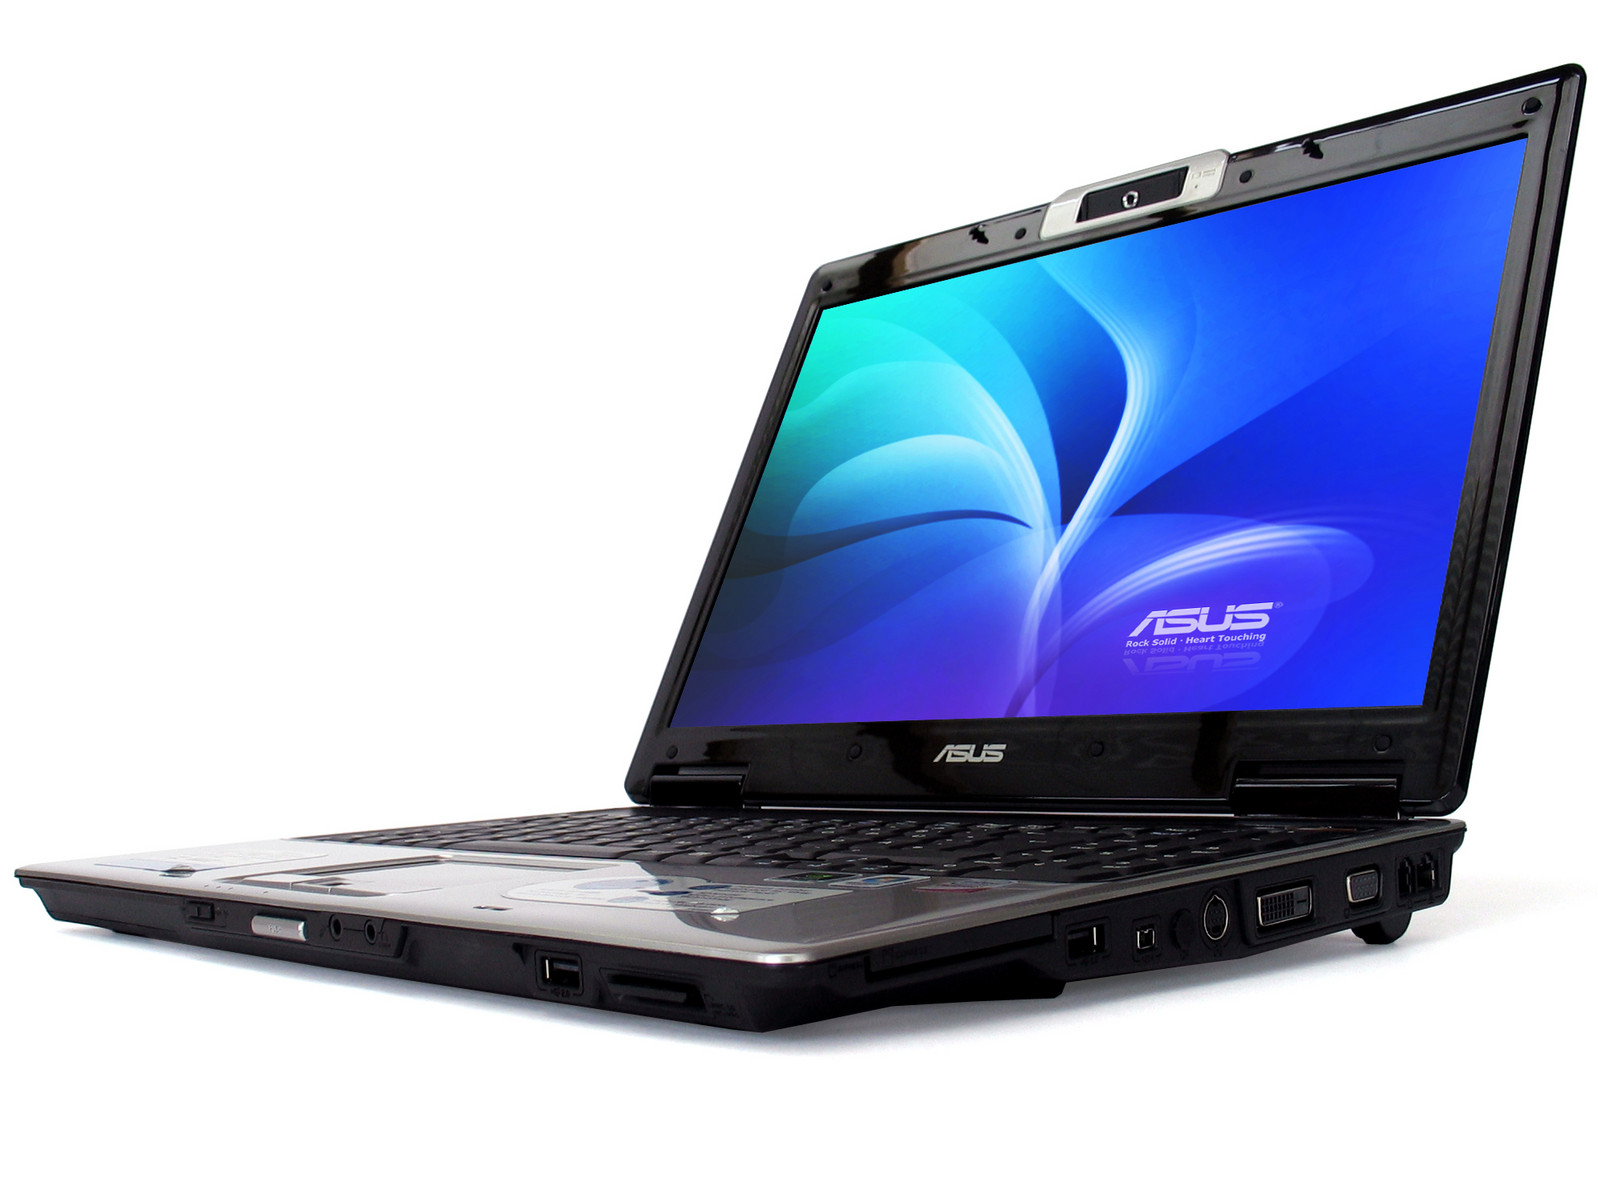 ASUS M51 SERISI DRIVER WINDOWS XP